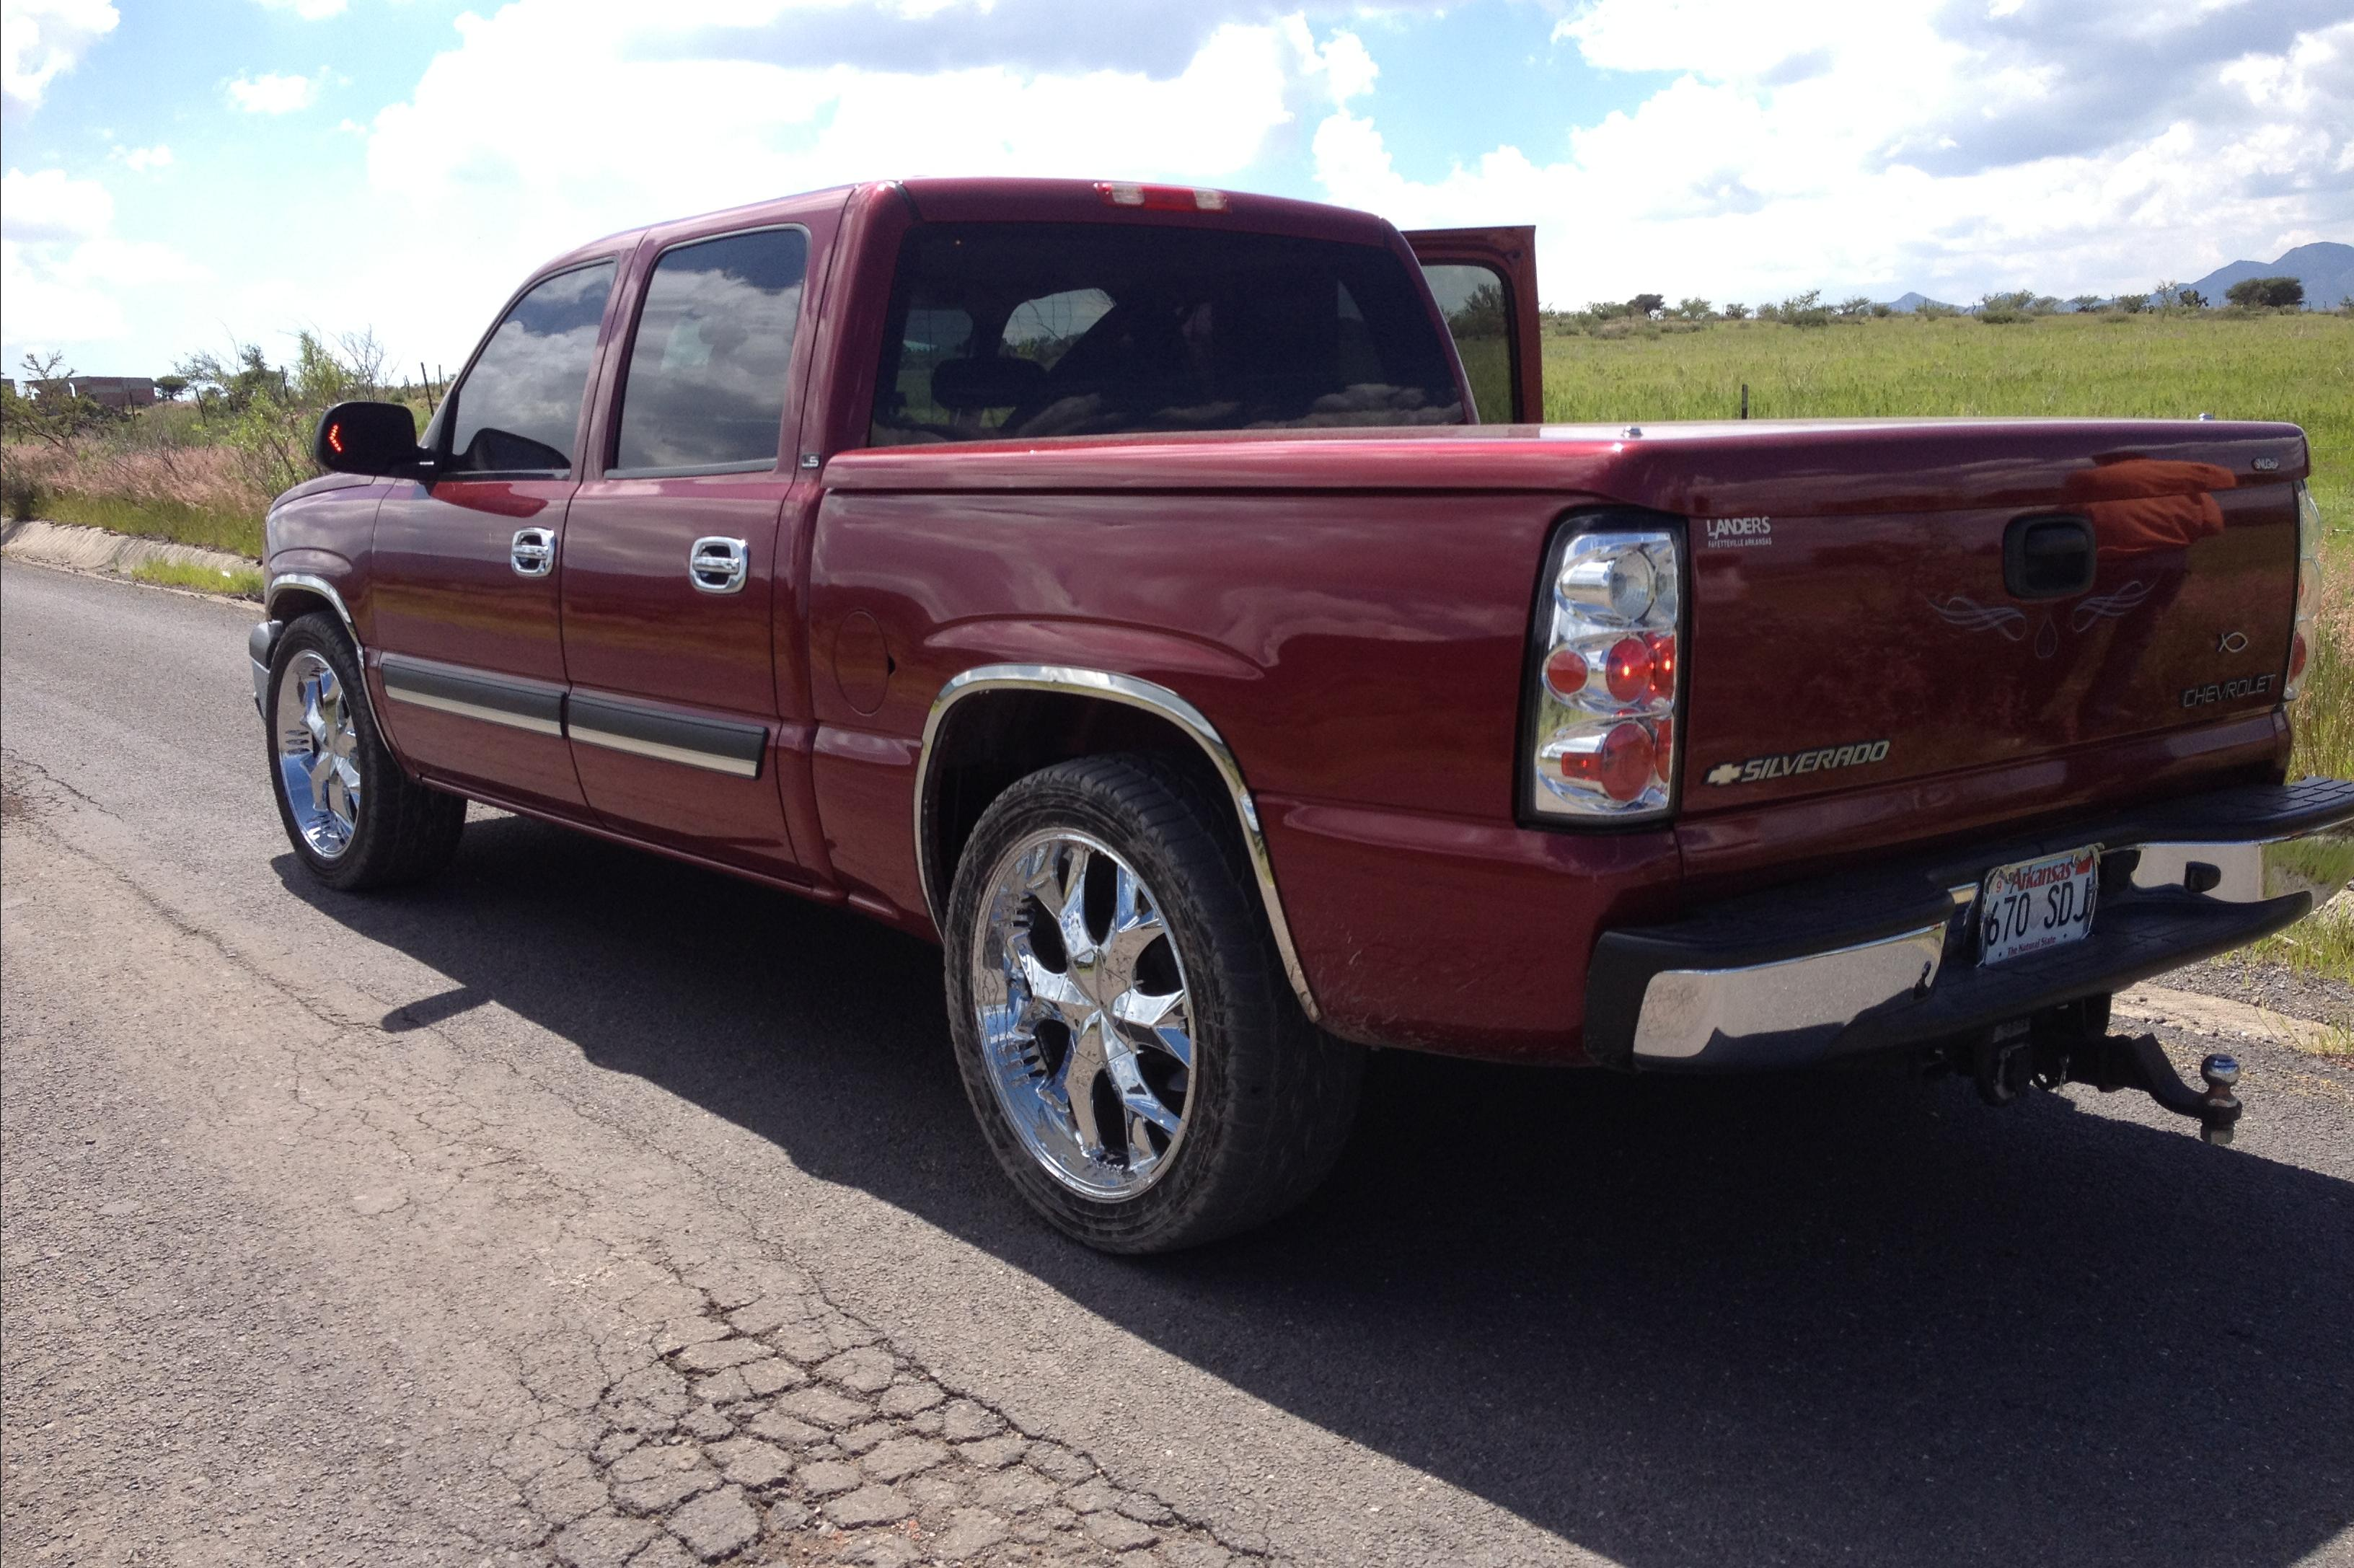 trucks4ever 2004 Chevrolet Silverado-1500-Crew-Cab